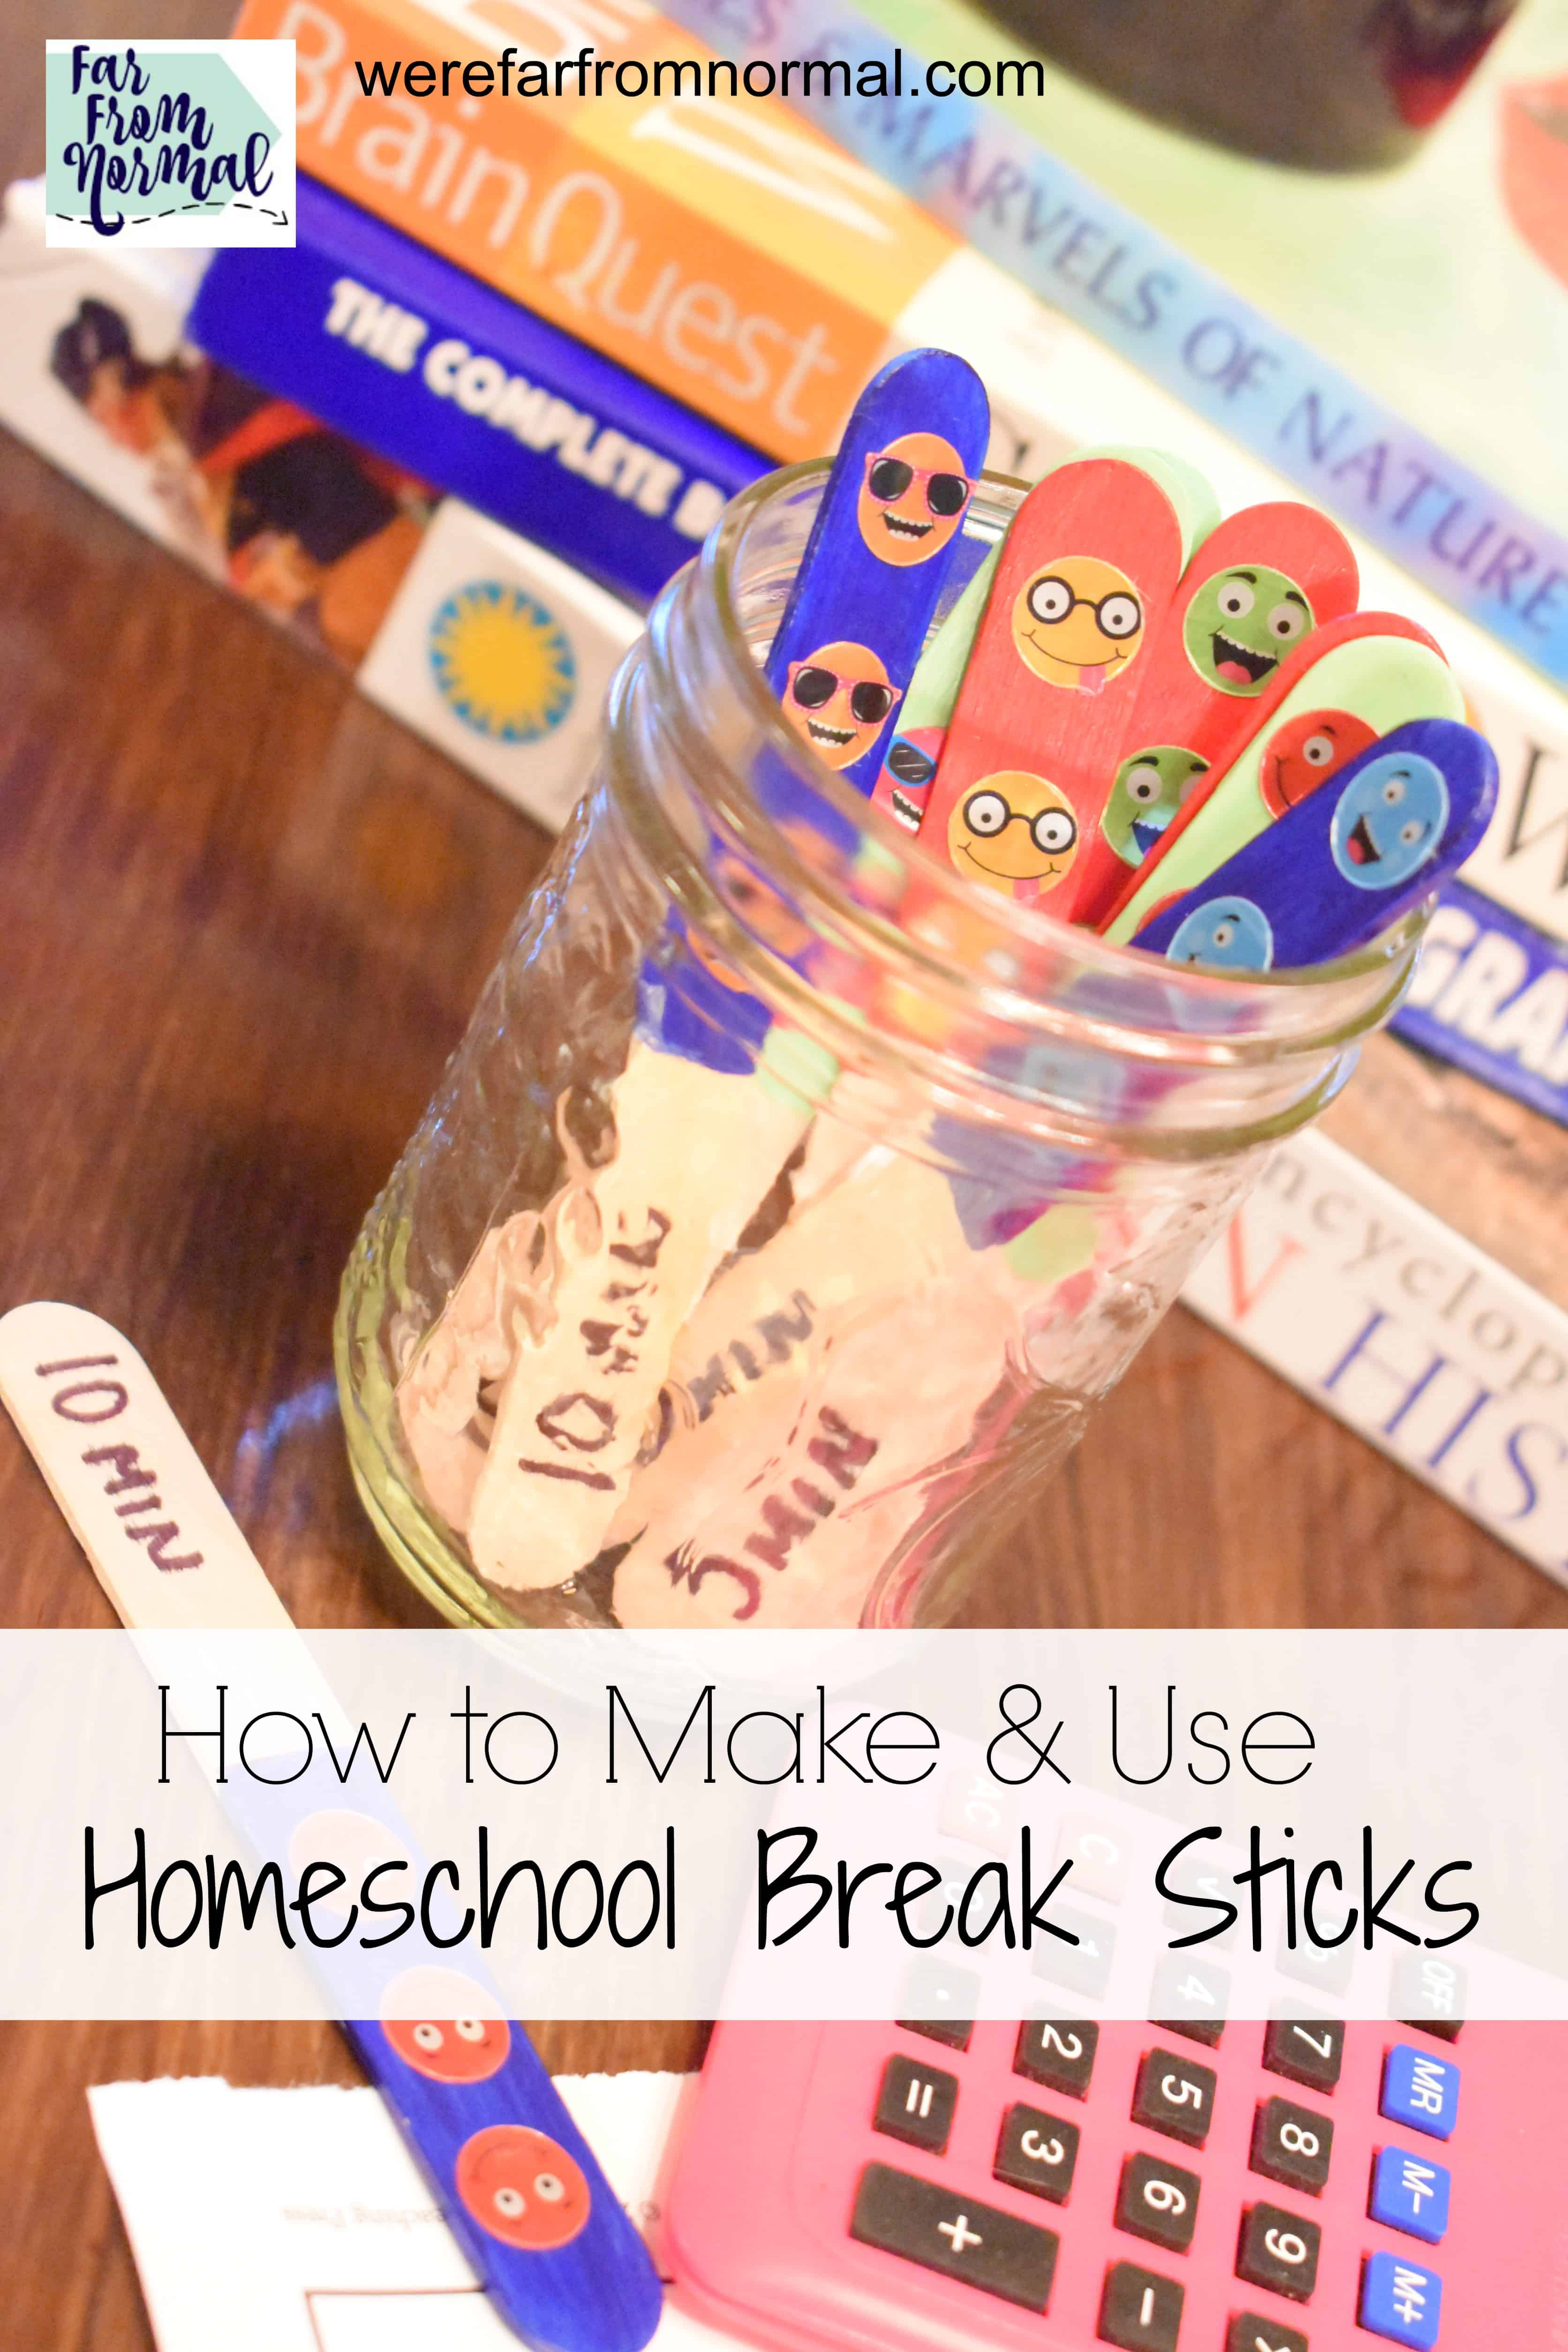 How to Make & Use Homeschool Break Sticks